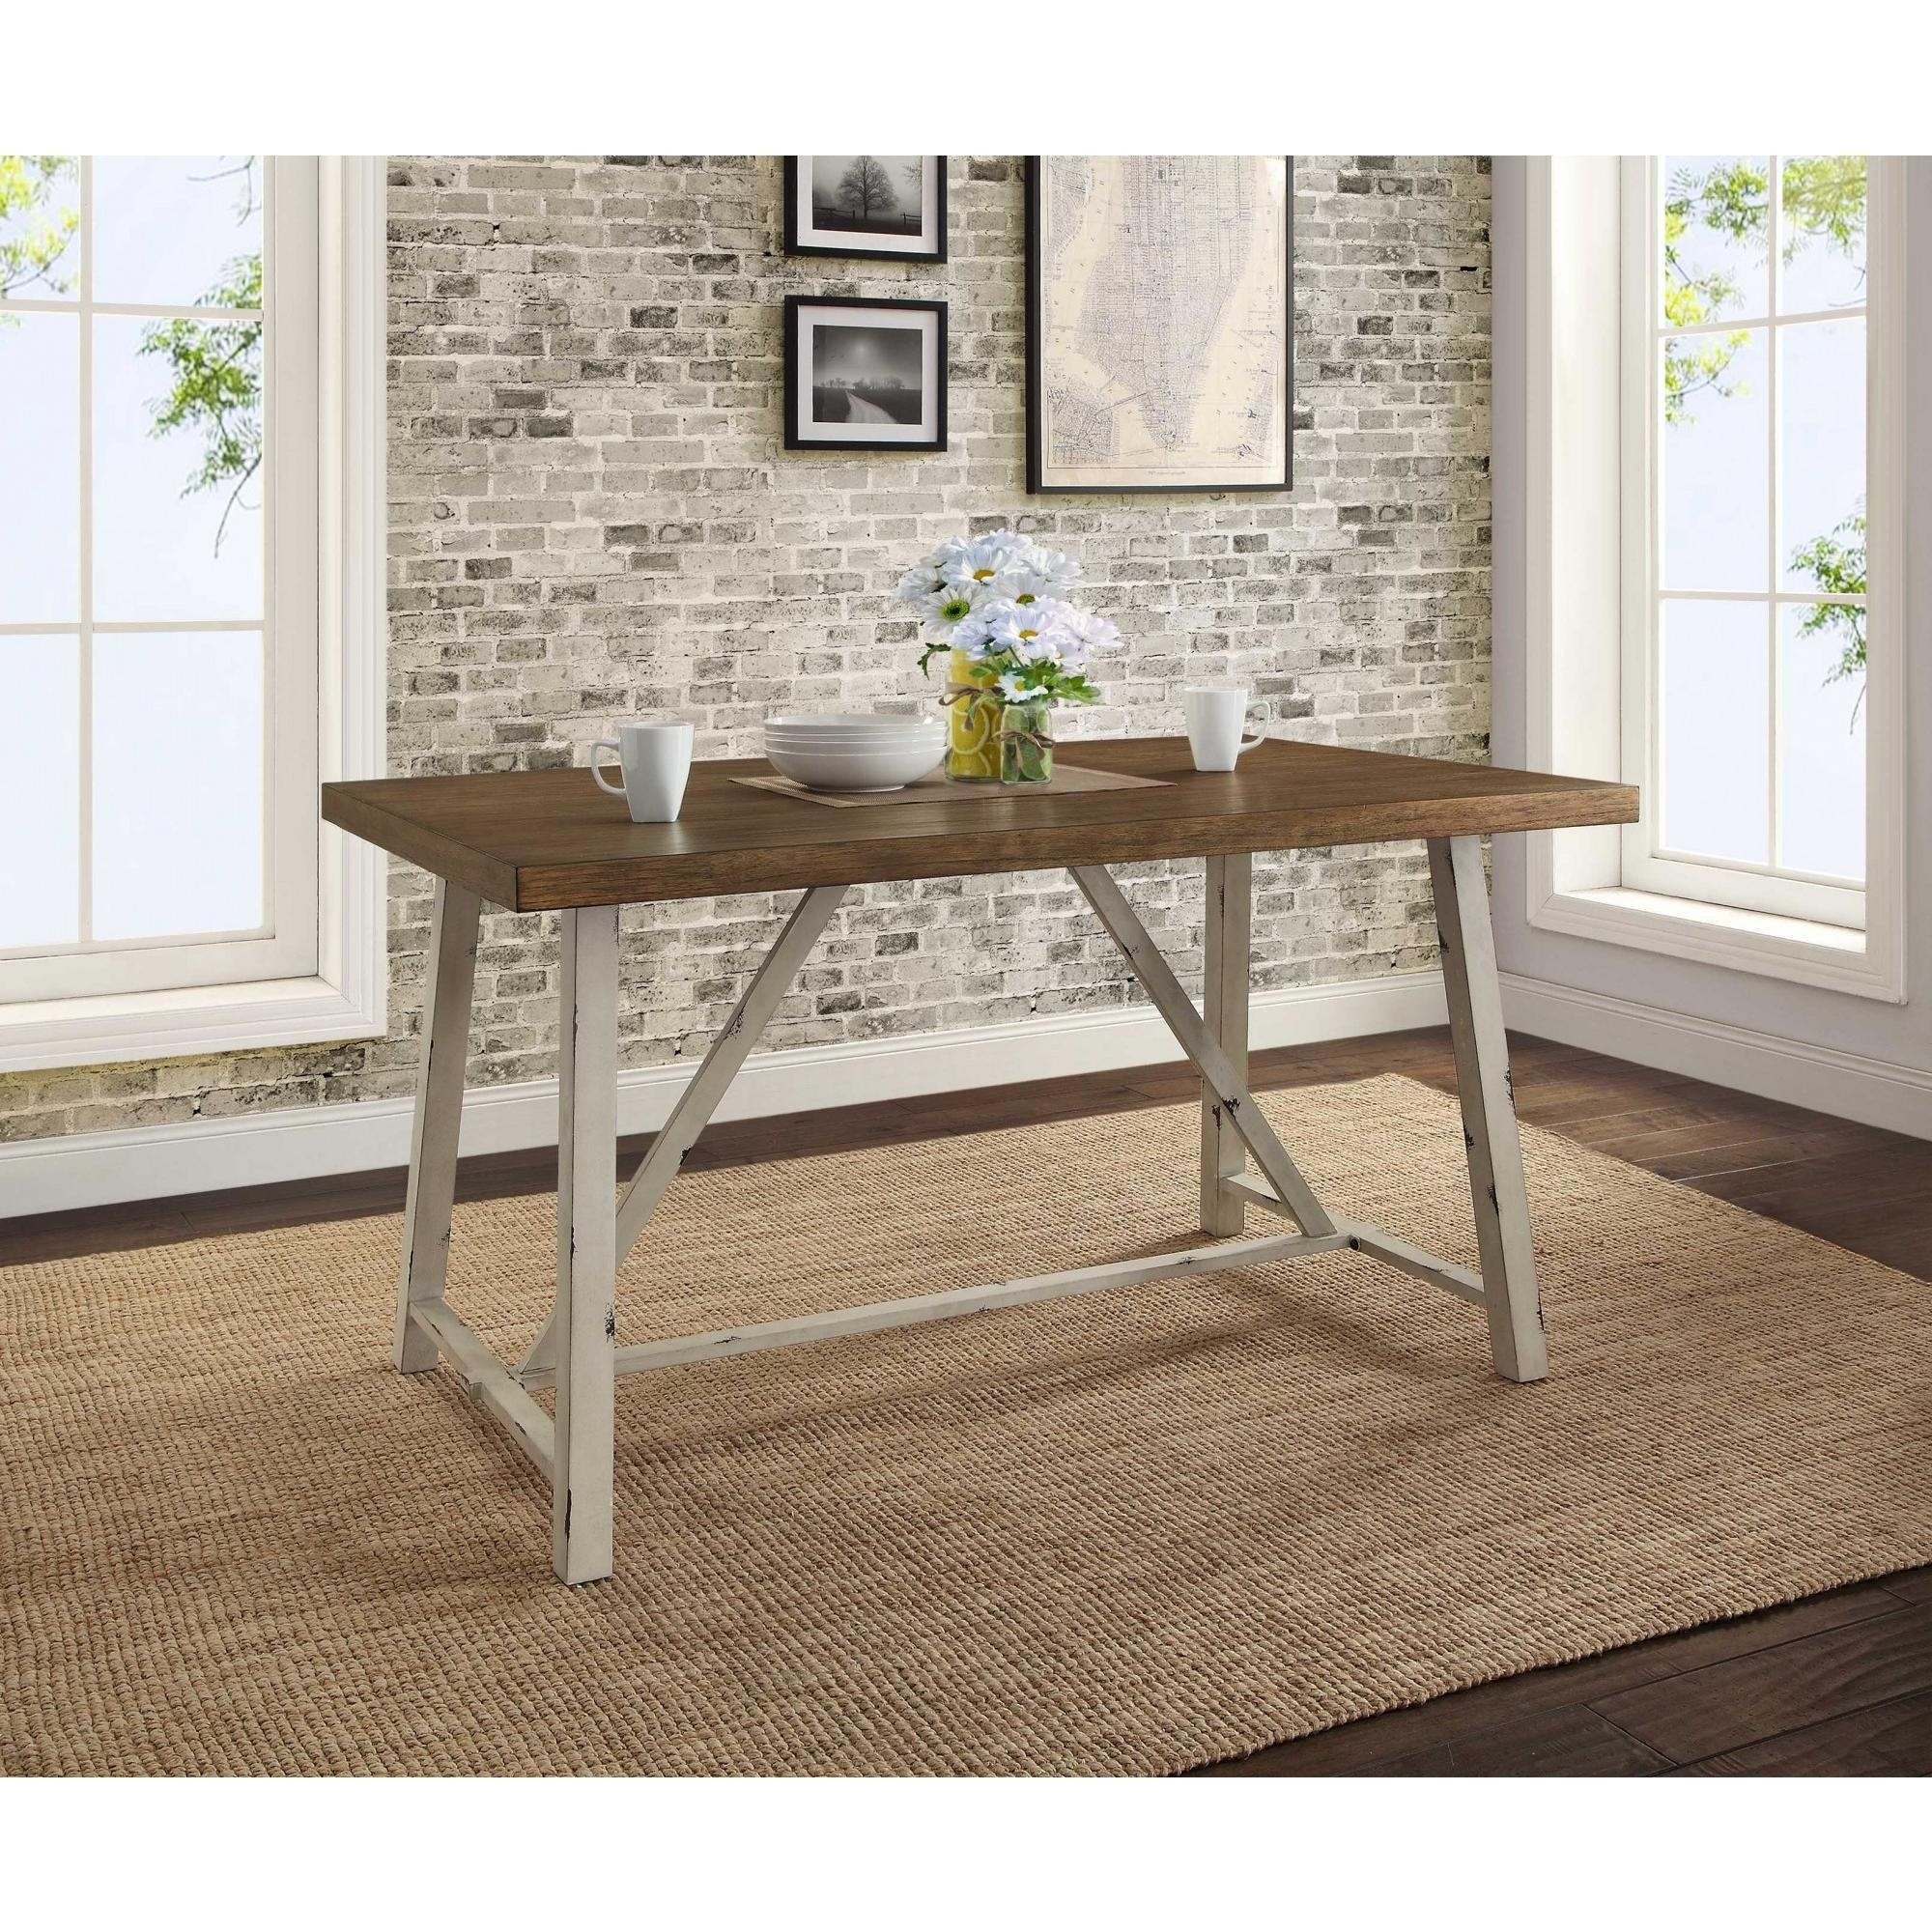 Better Homes & Gardens Collin Wood And Metal Dining Table With Trendy Dining Tables With White Legs And Wooden Top (Gallery 17 of 25)